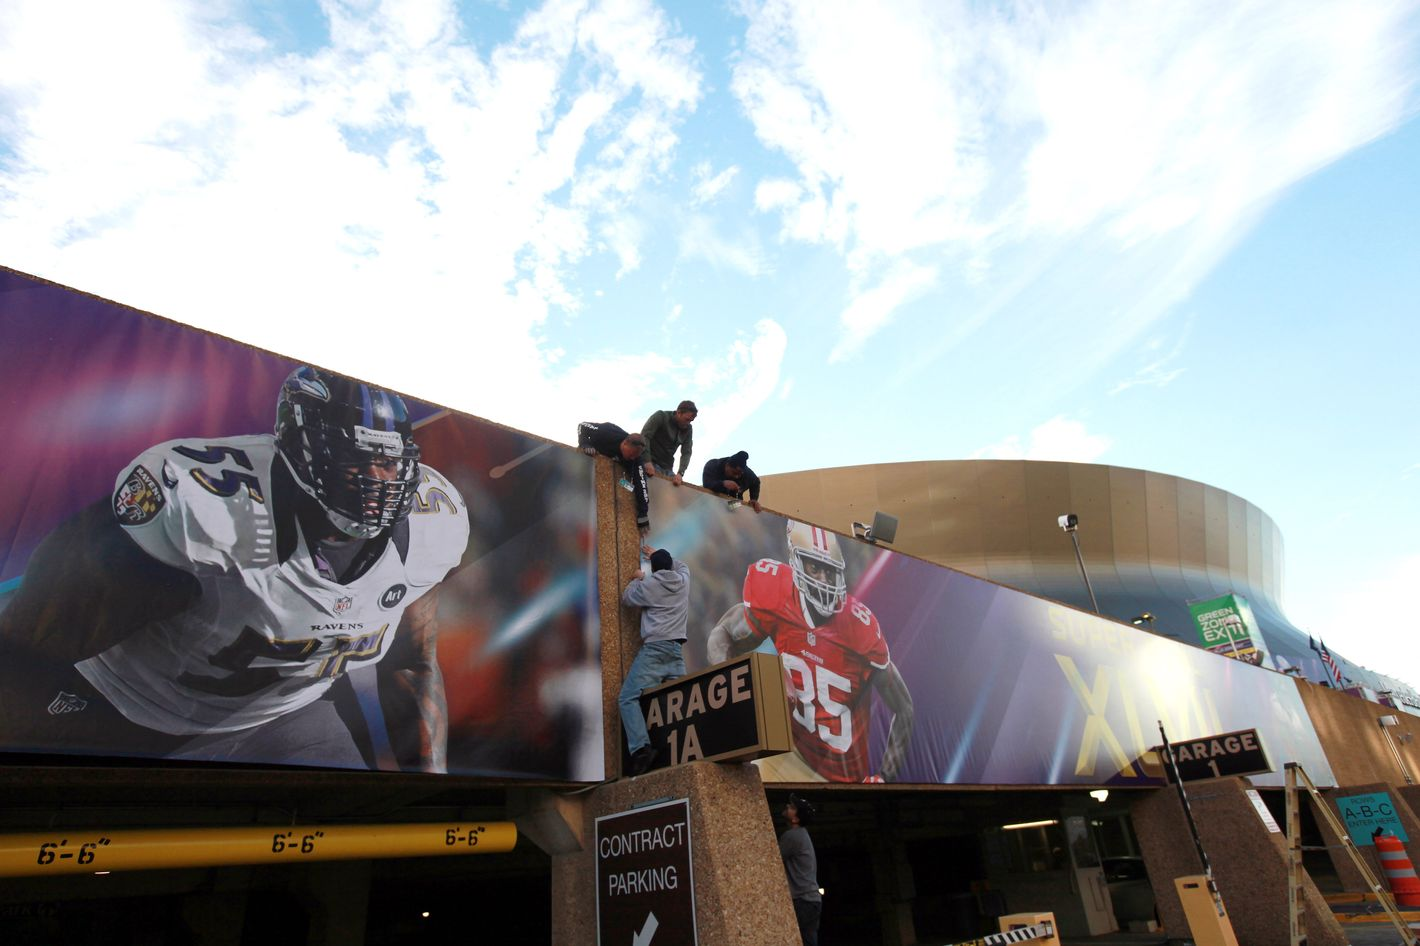 Workers install signs at the Mercedes-Benz Superdome prior to Super Bowl XLVII on January 31, 2013 in New Orleans, Louisiana.